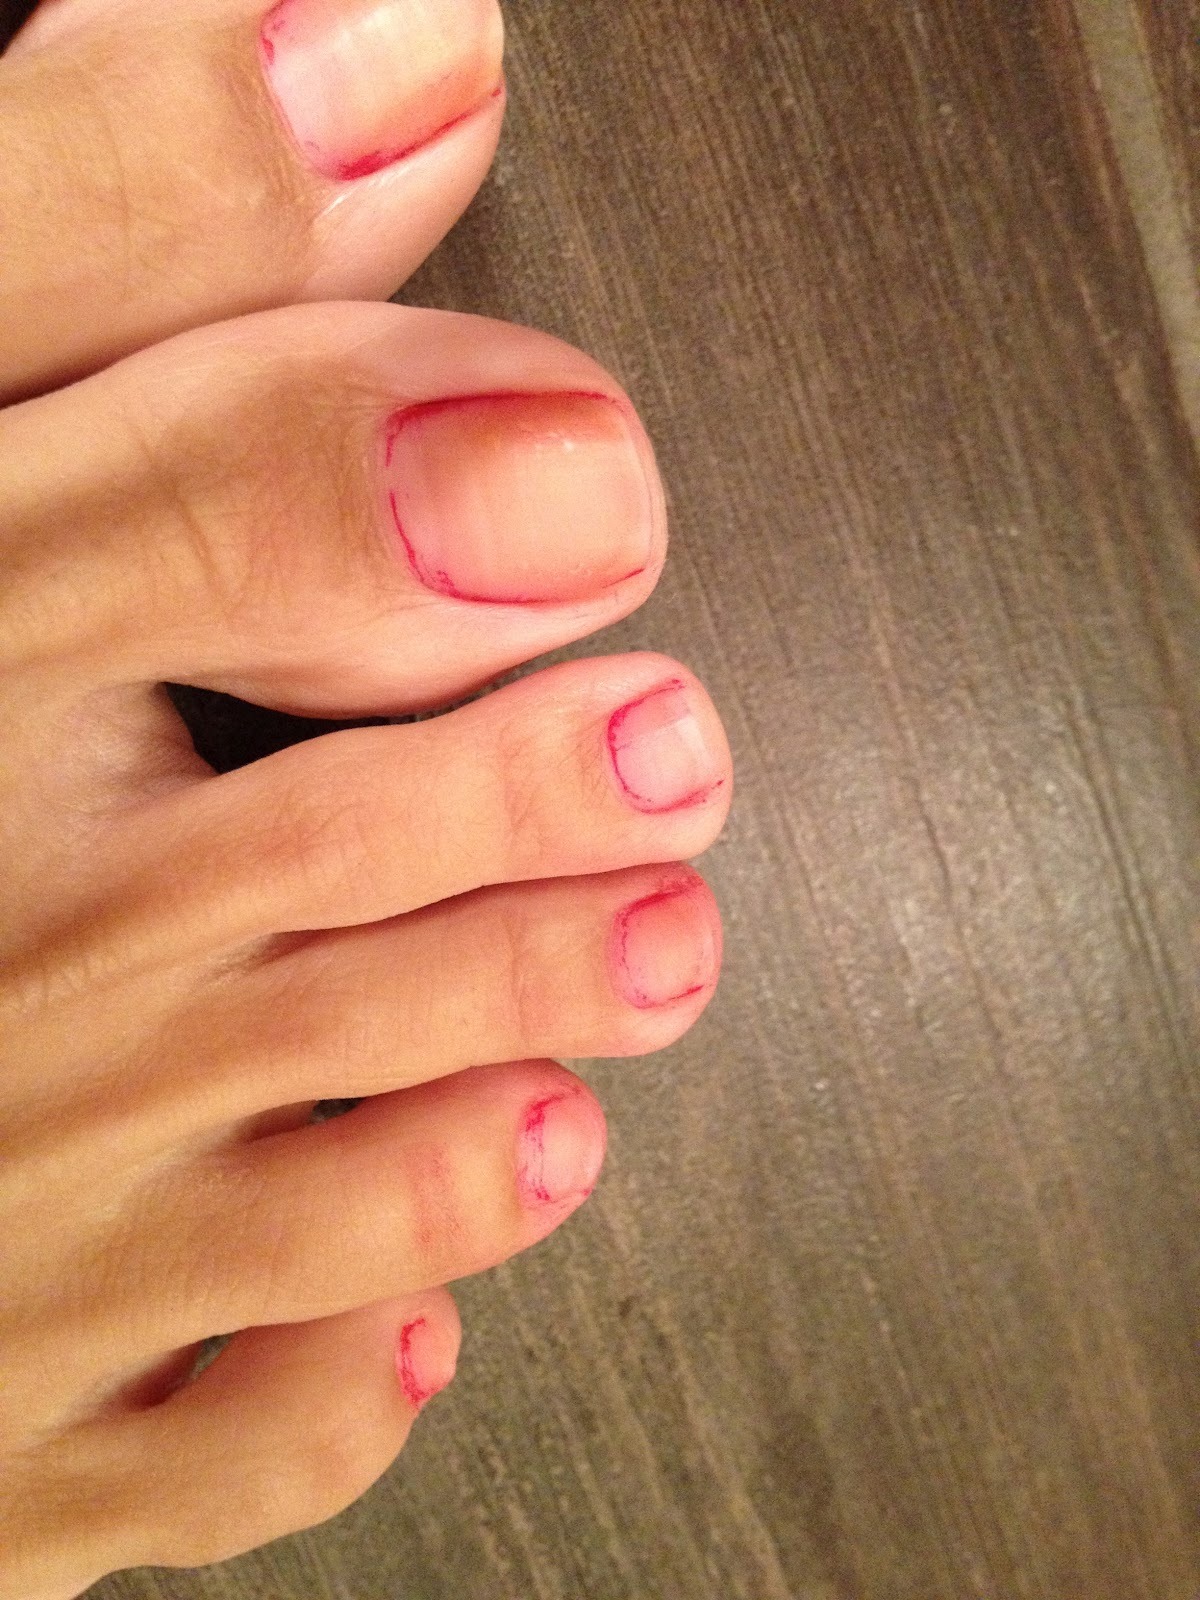 Yellow Toenails And Diabetes: Doodles & Stitches: Nail Whitening REVIEW